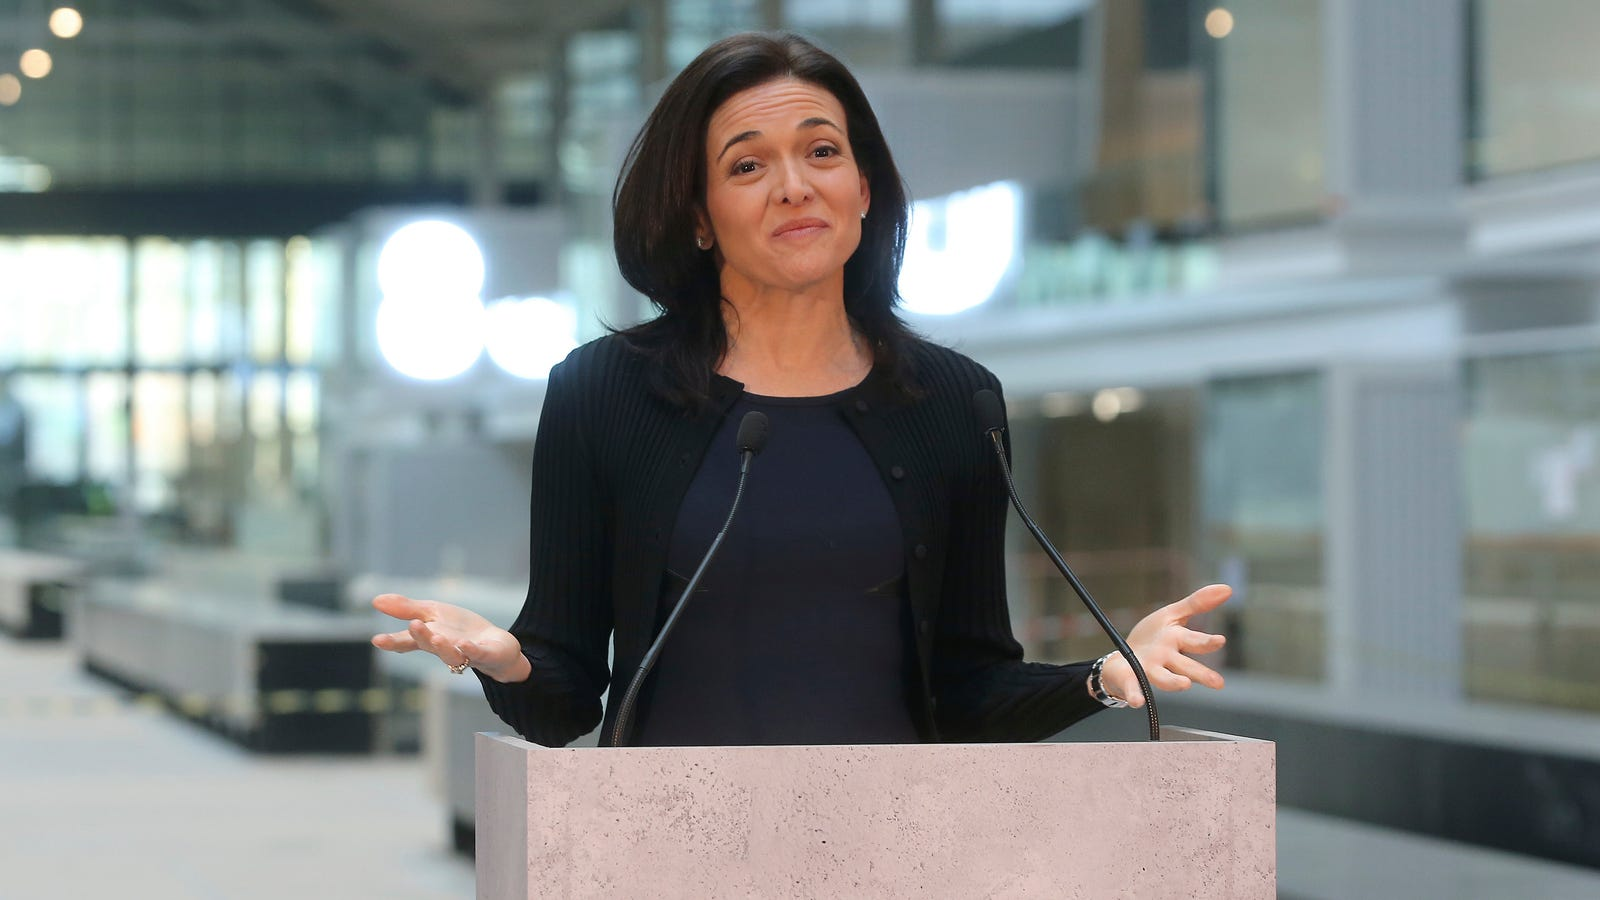 QnA VBage Sheryl Sandberg: The Teens 'Consented' to Putting Facebook Spyware on Their Phones